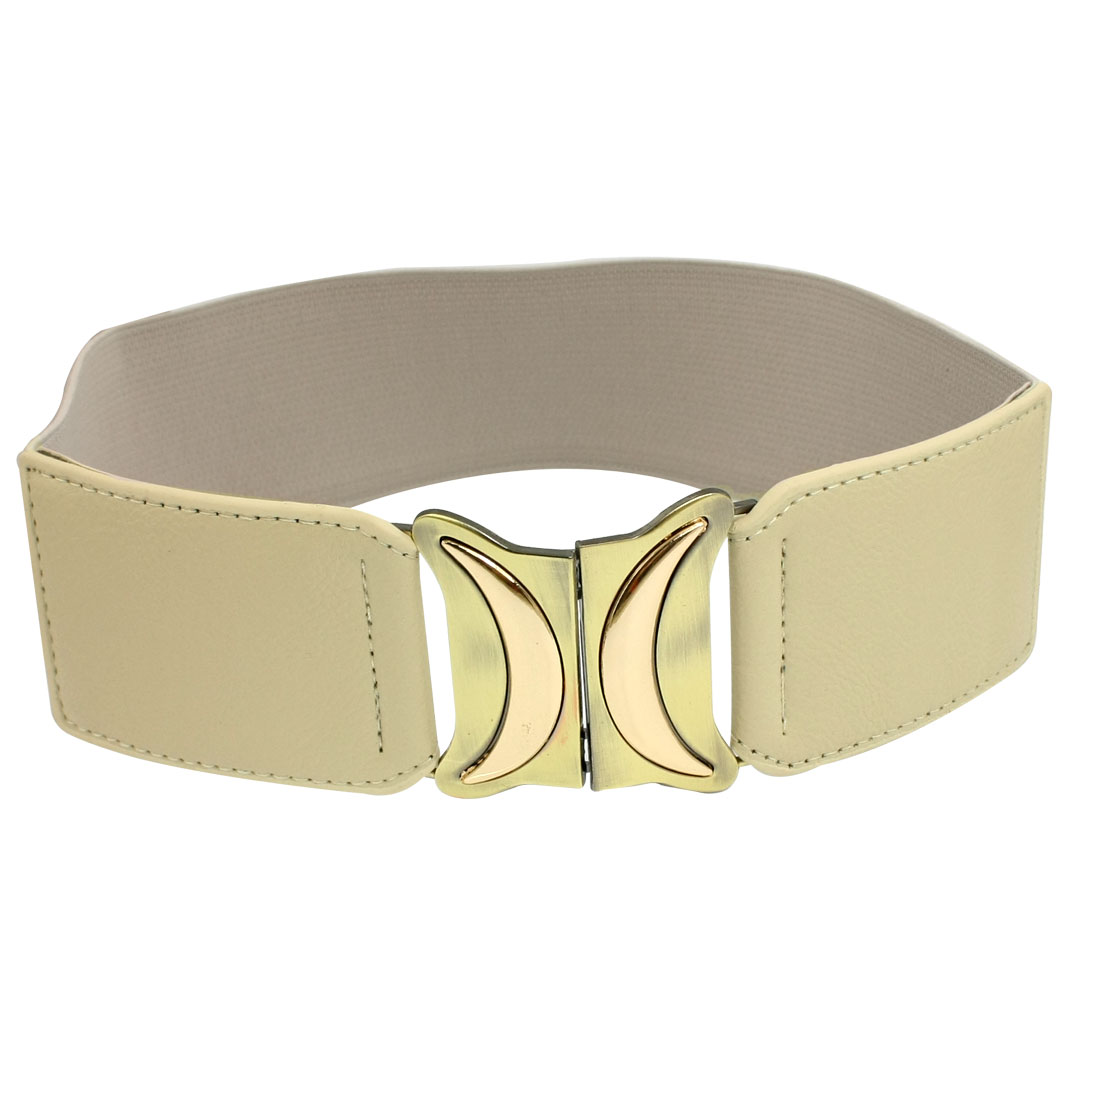 Metal Double Half Moon Decor Interlocking Buckle Waist Belt Cinch Gray